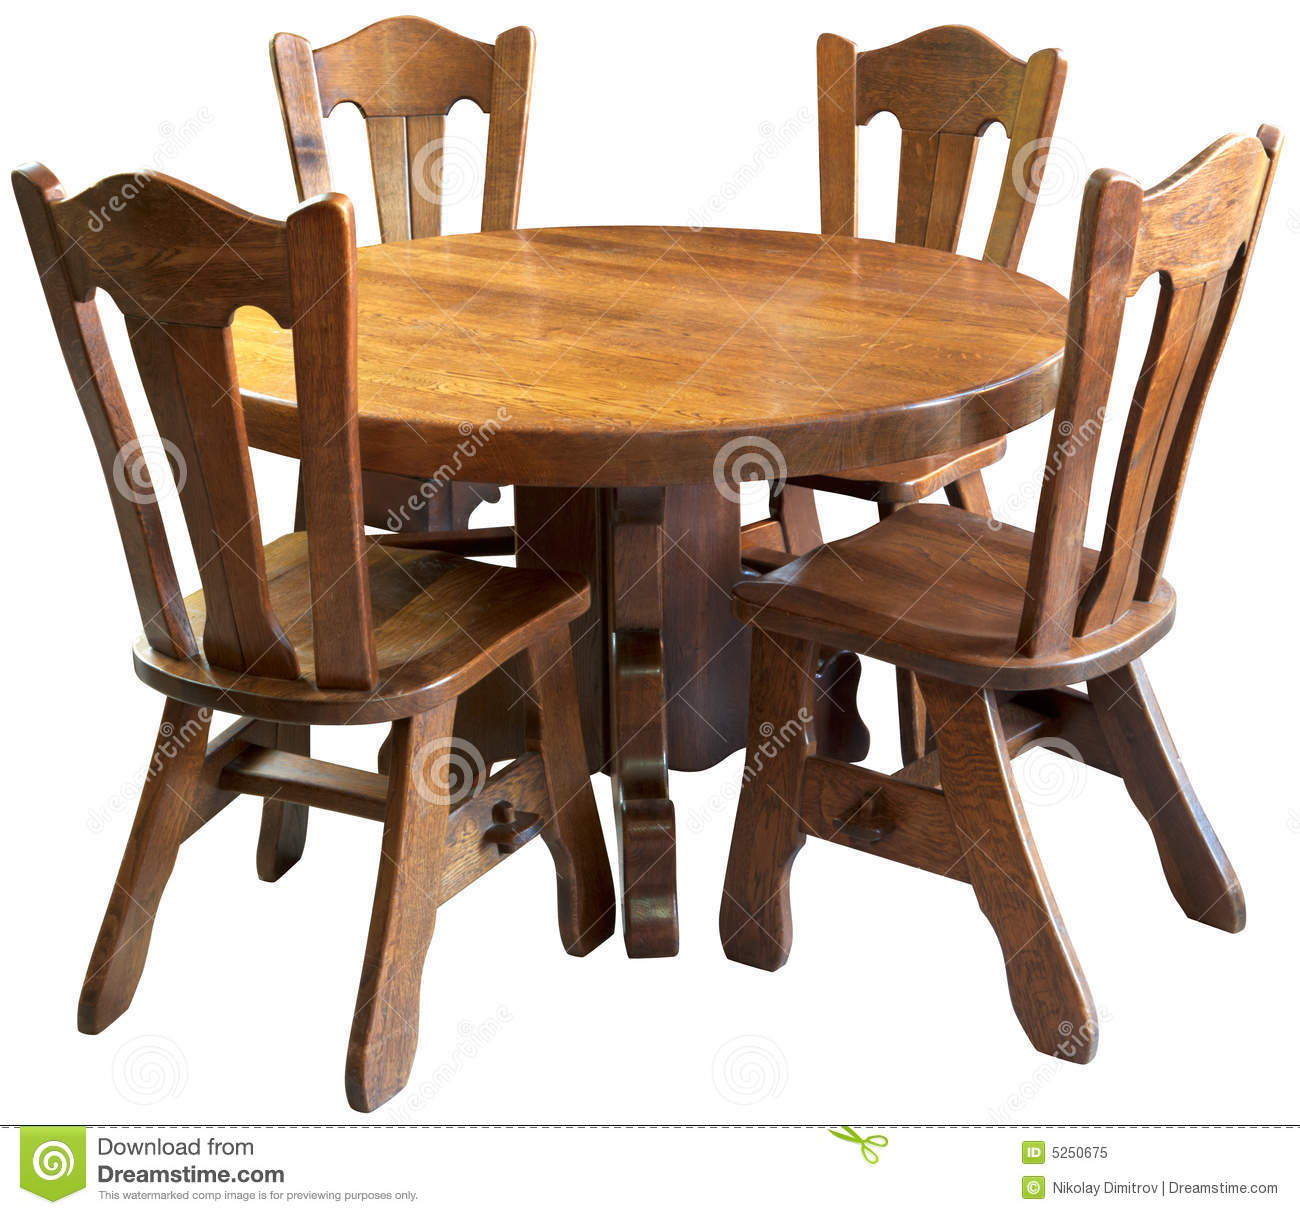 Solid wood kitchen table set isolated stock image image 5250675 Wooden furniture pics